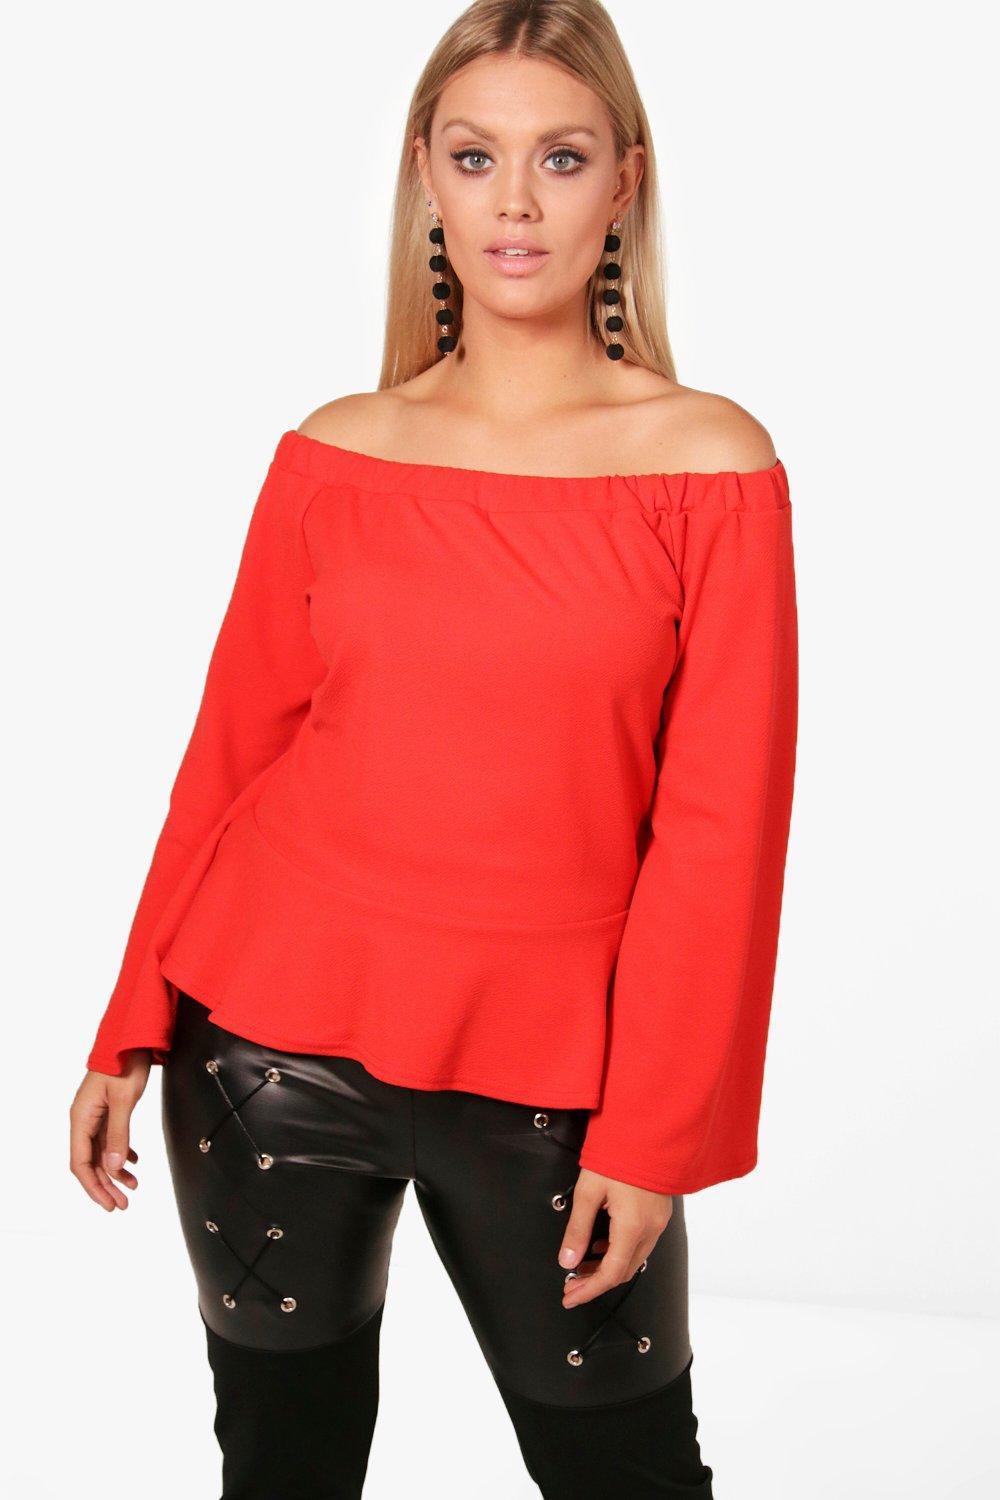 483921445d2ebd Boohoo Plus Lora Off The Shoulder Ruffle Hem Top in Red - Lyst